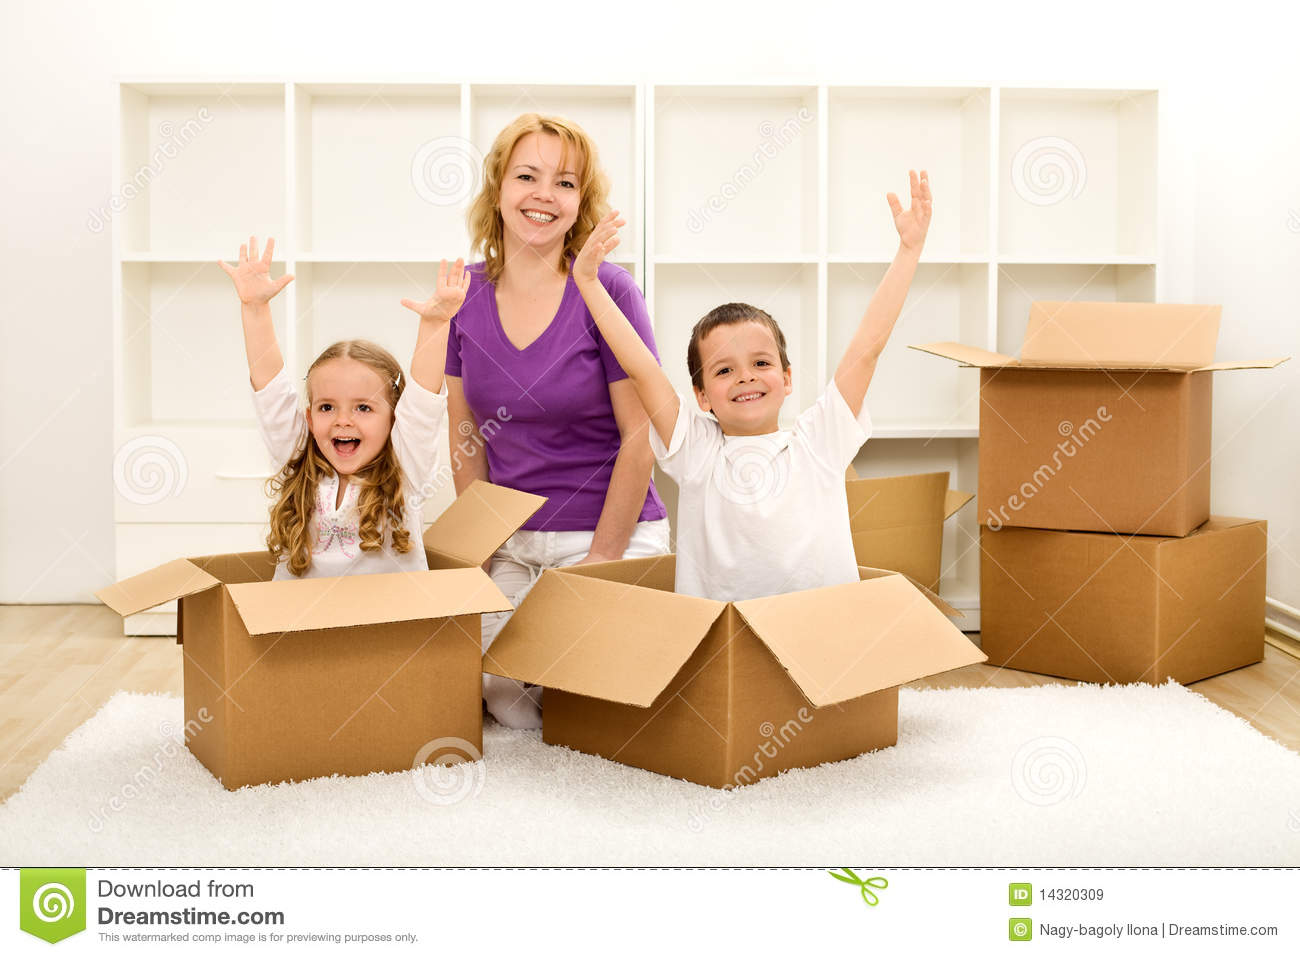 Happy People Moving In A New Home Stock Image - Image of ...